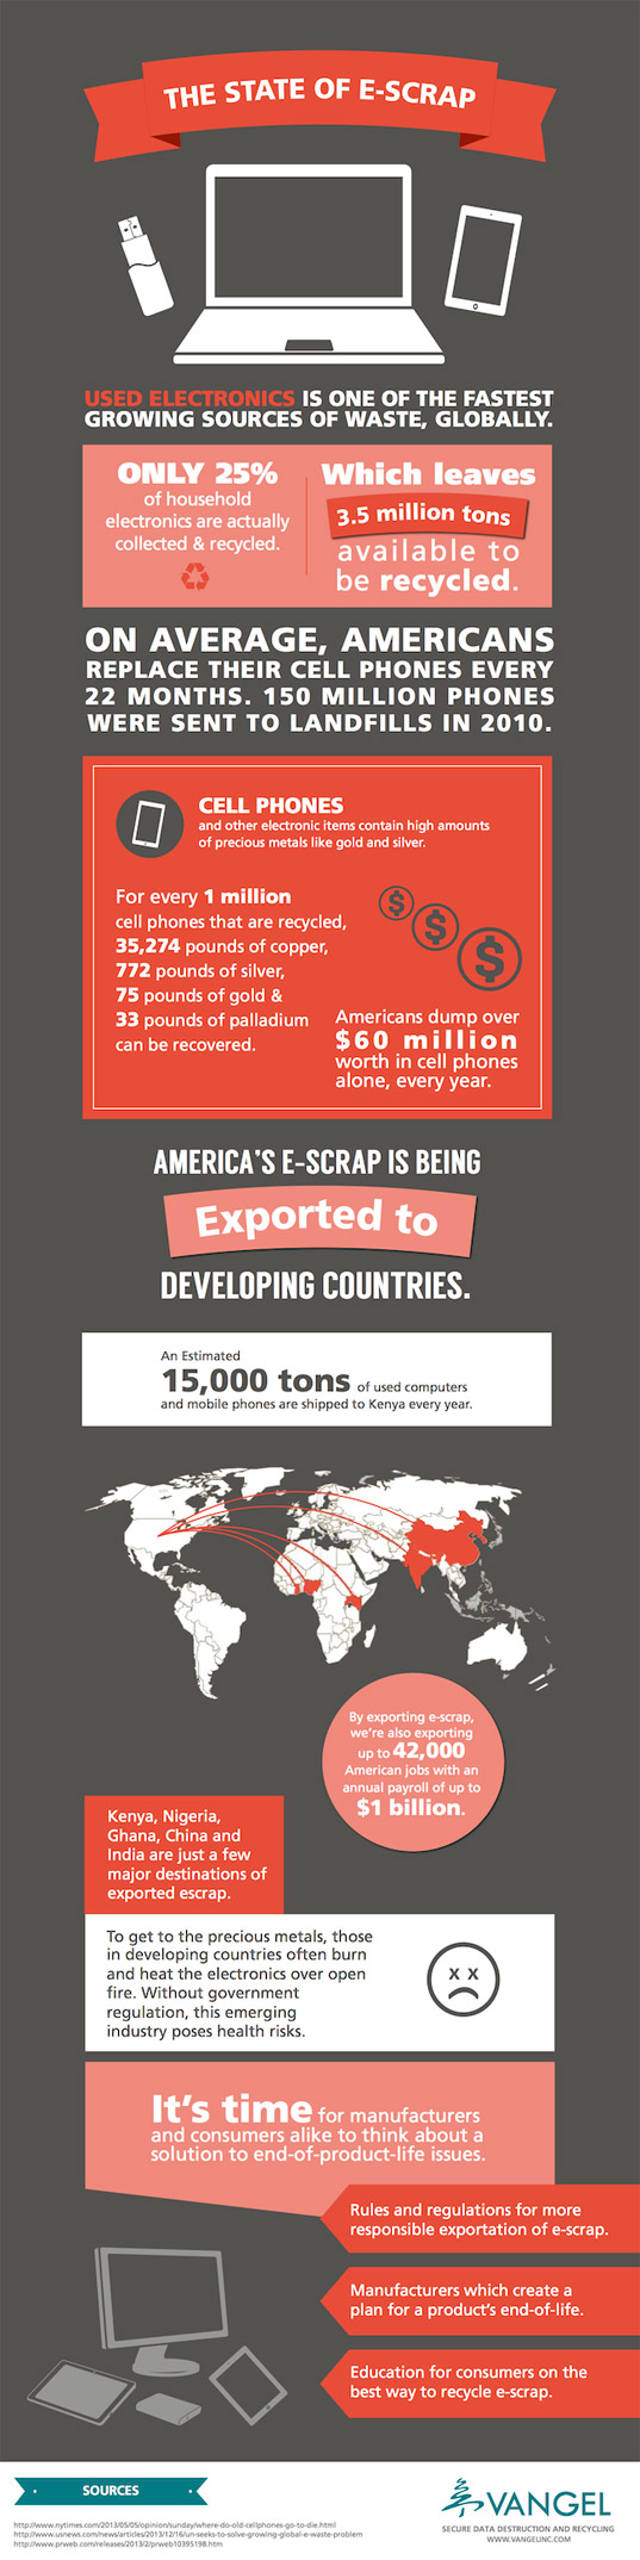 The State of E-Waste- infographic